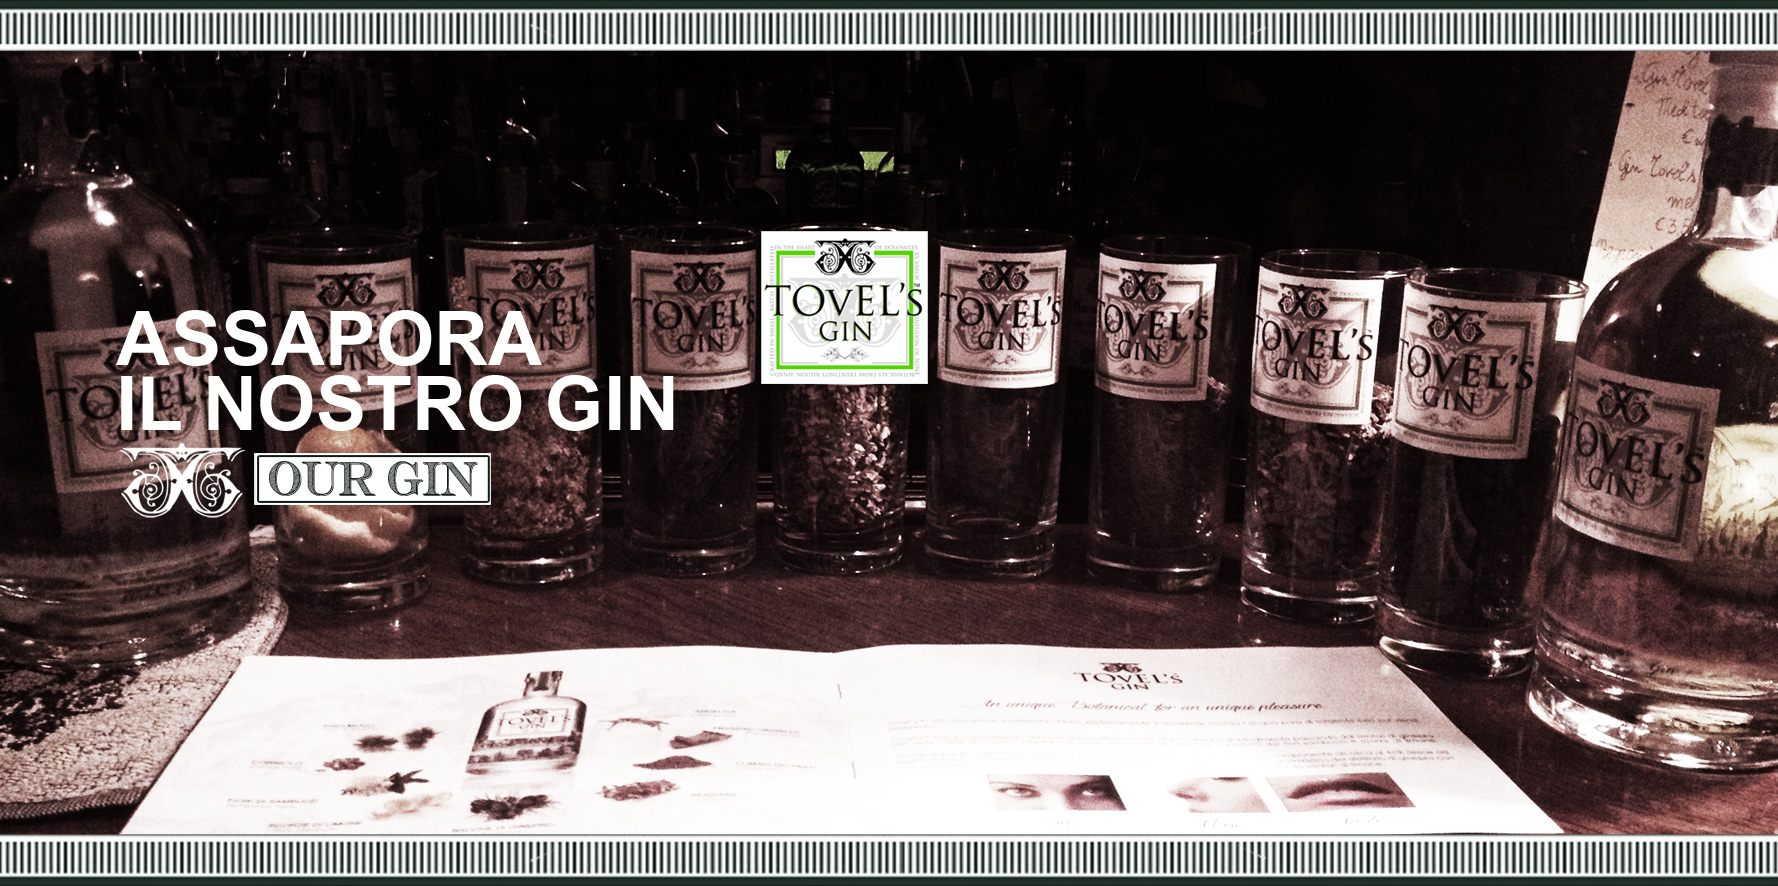 sf_tovels_gin_ourgin